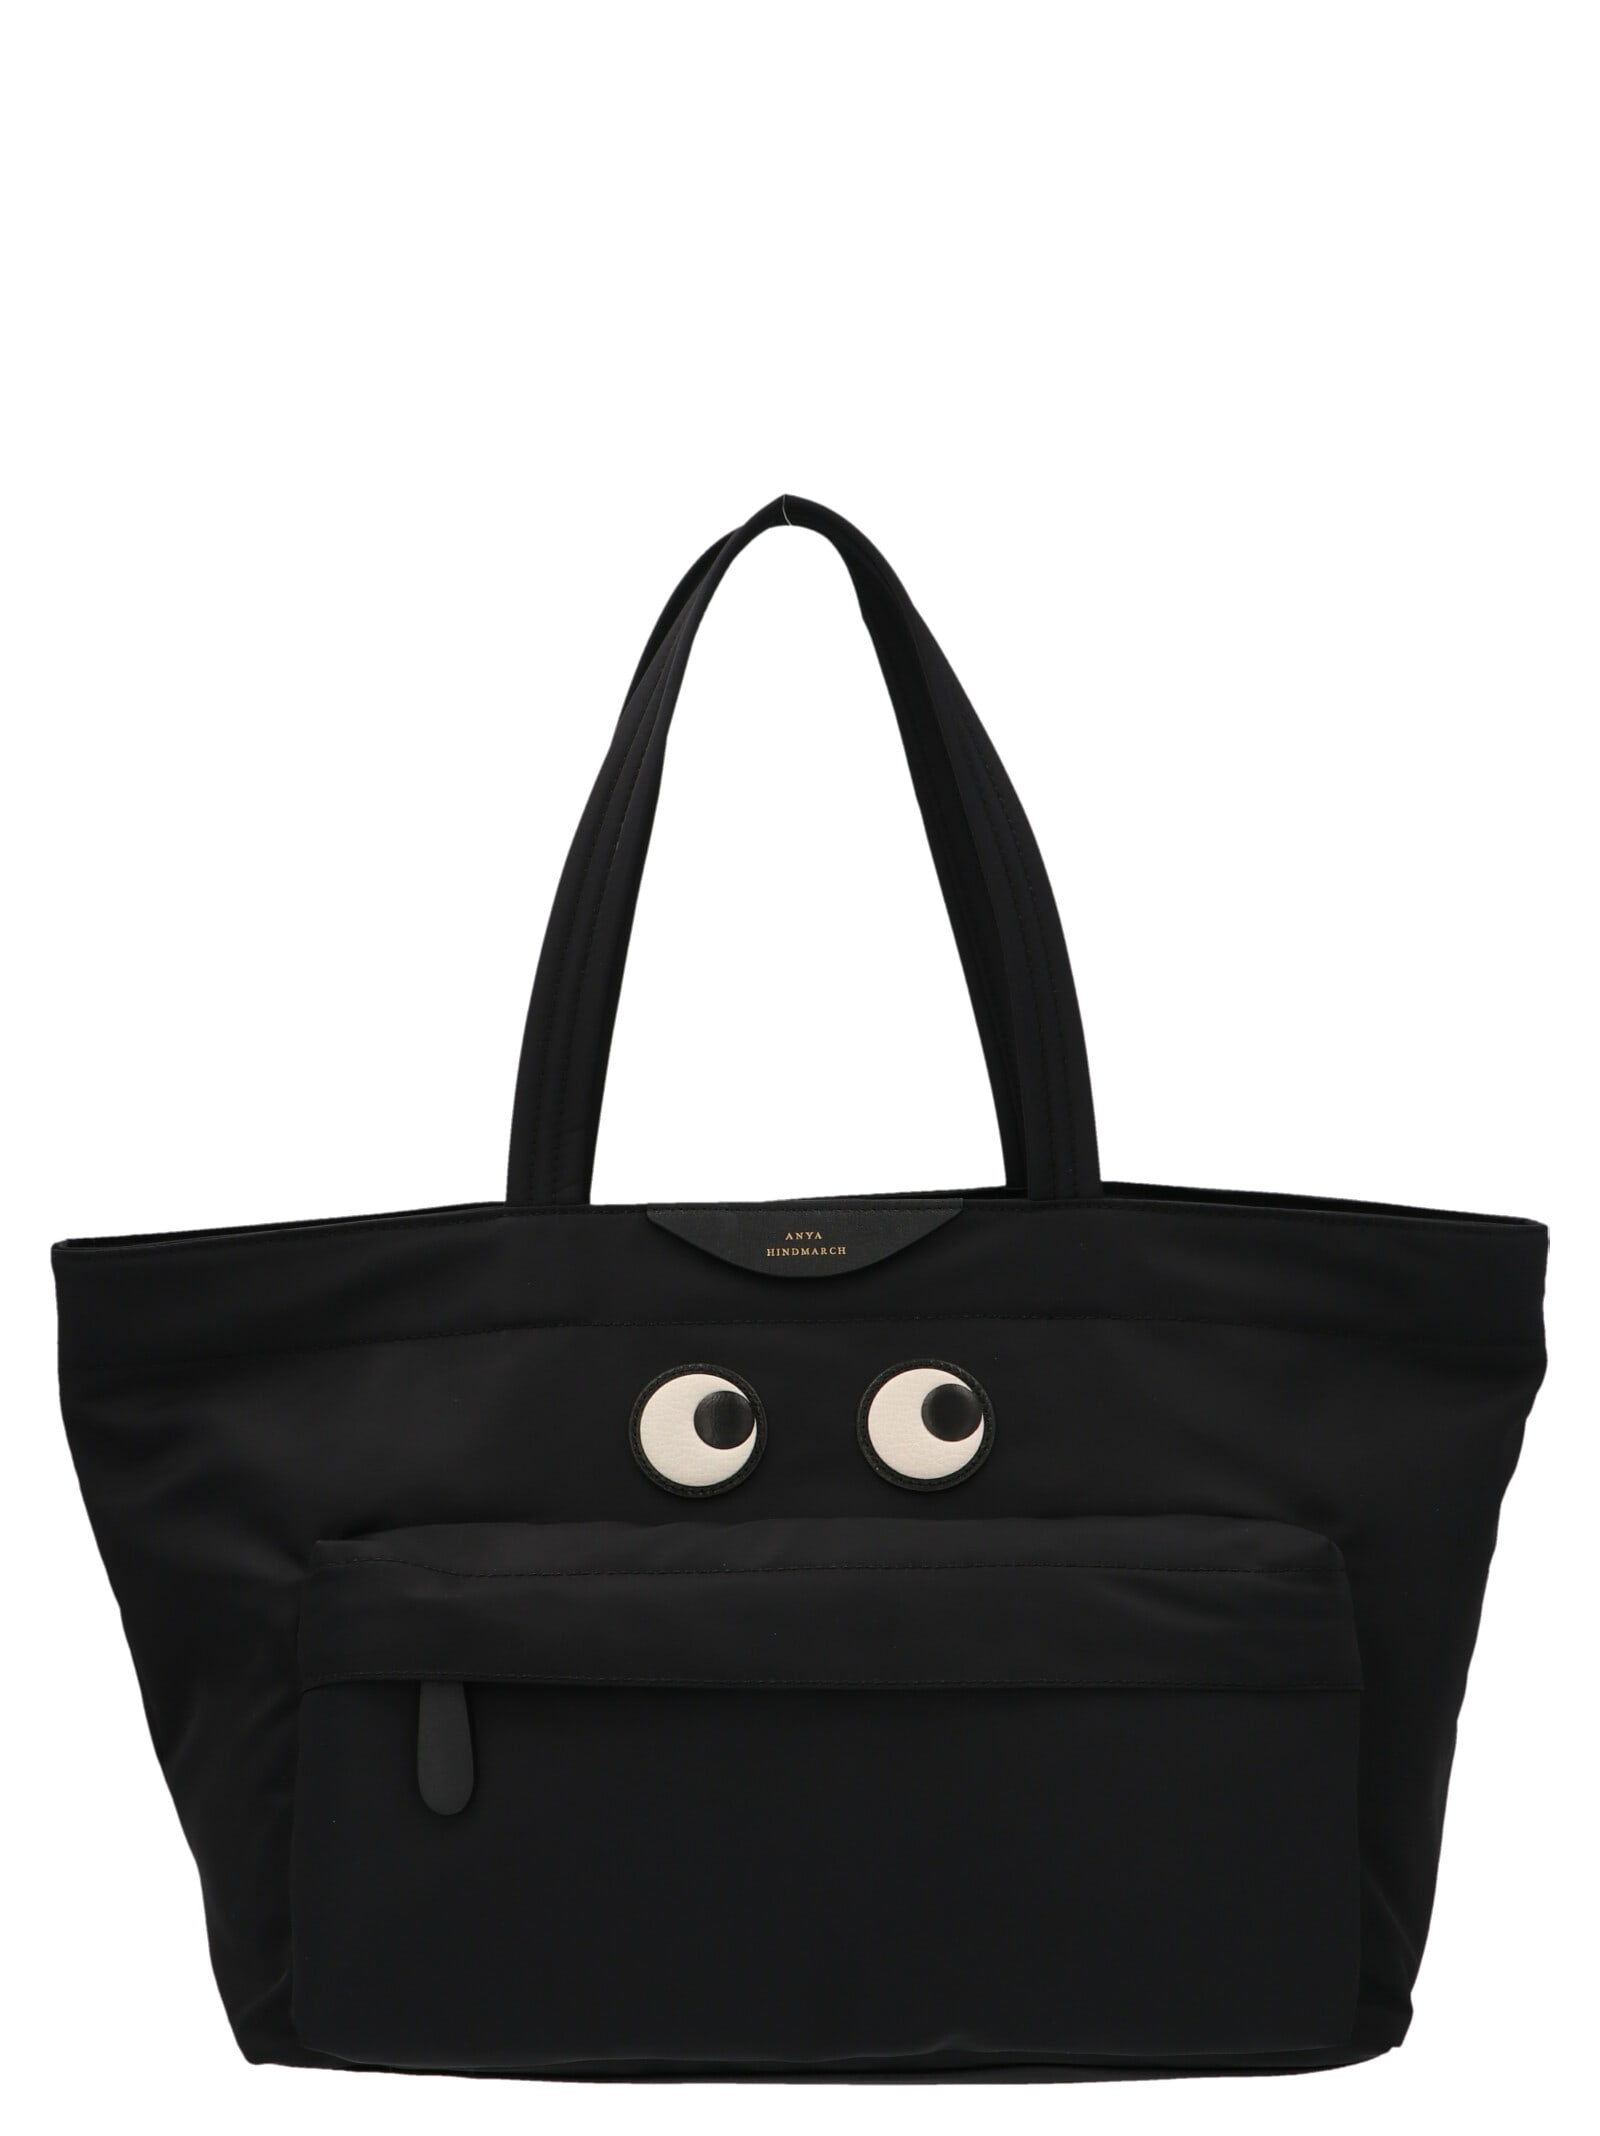 Anya Hindmarch EYES BAG